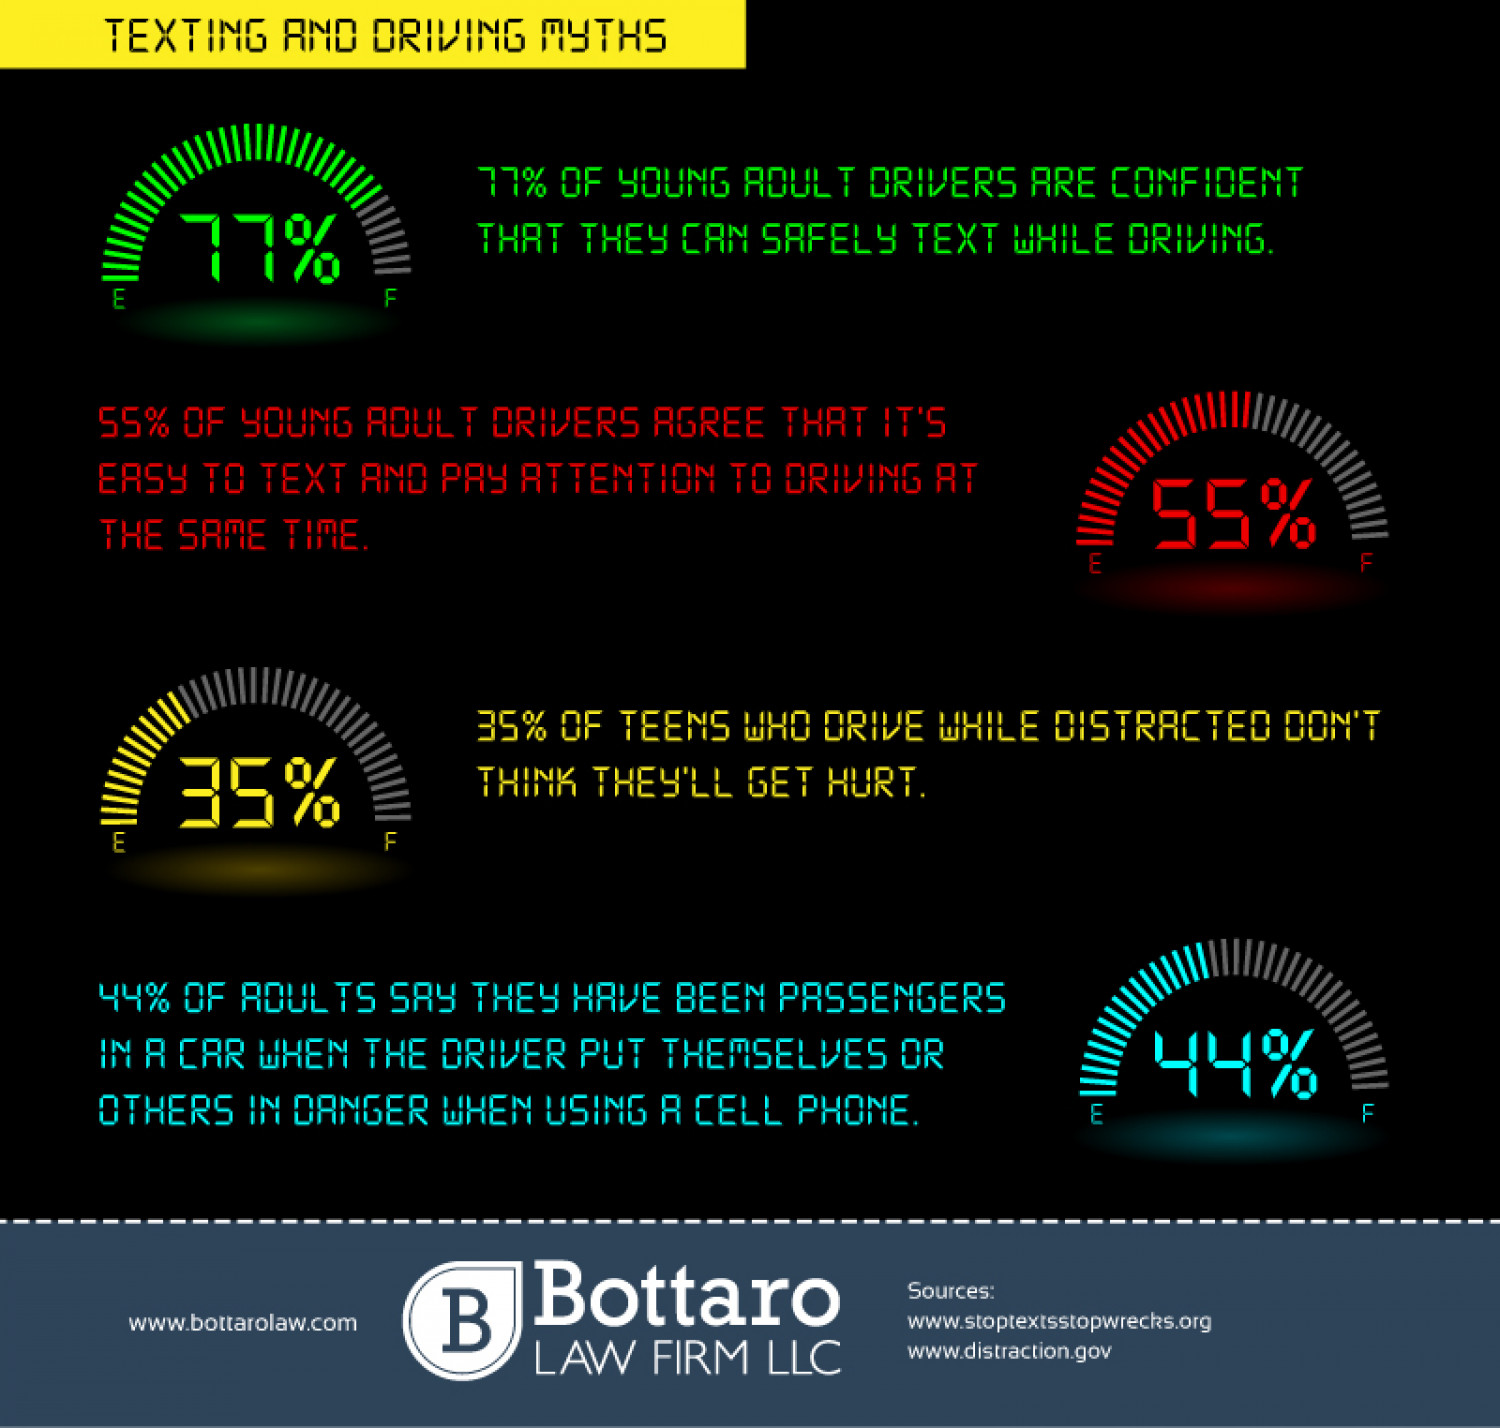 Texting and Driving Myths - RI Personal Injury Lawyer Infographic